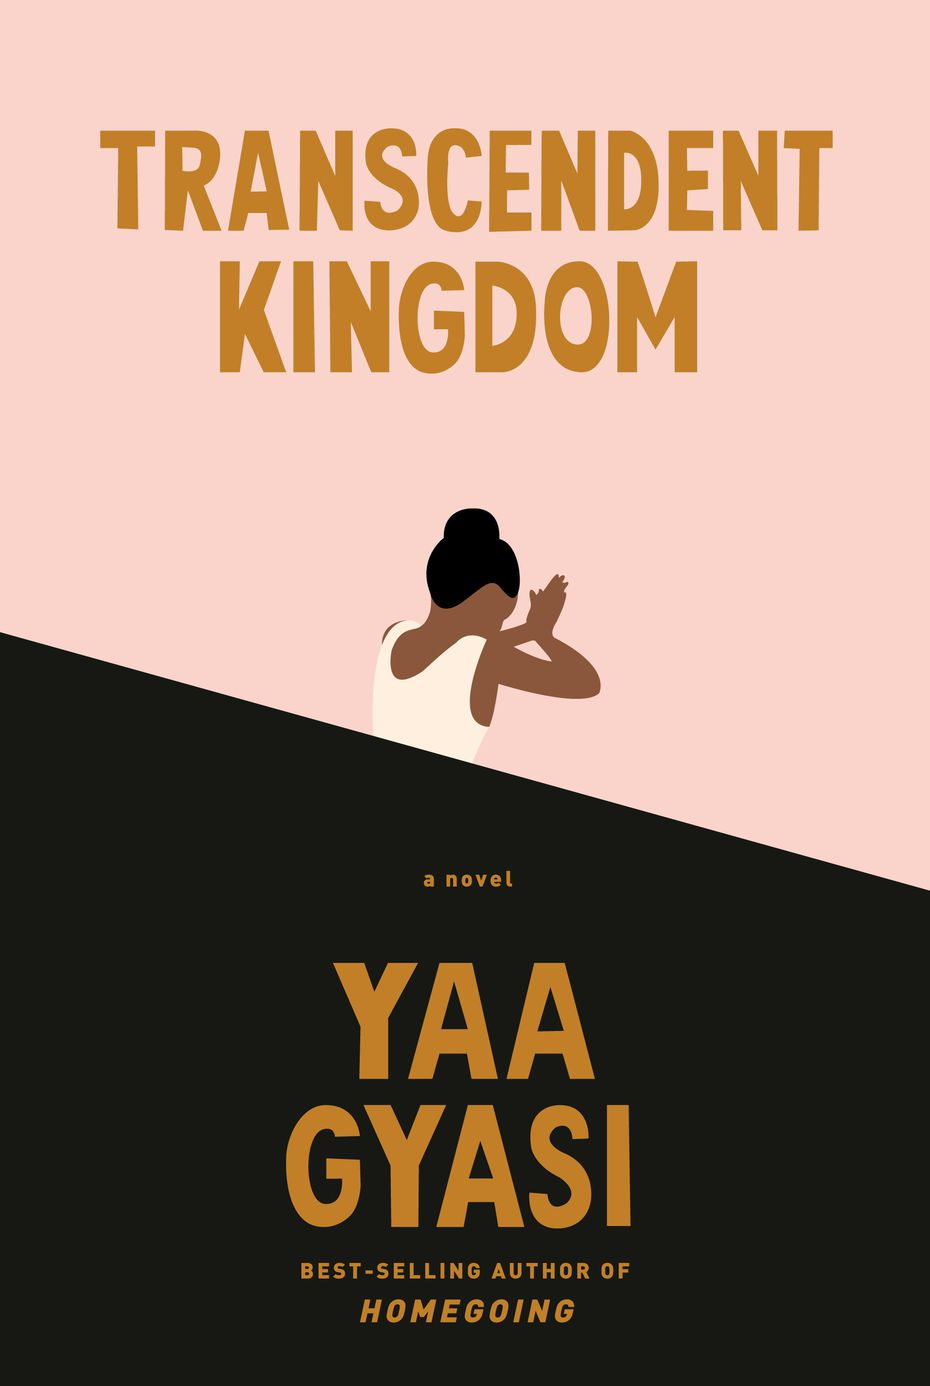 """Transcendent Kingdom"" by Yaa Gyasi is set for a Sept. 1 release."